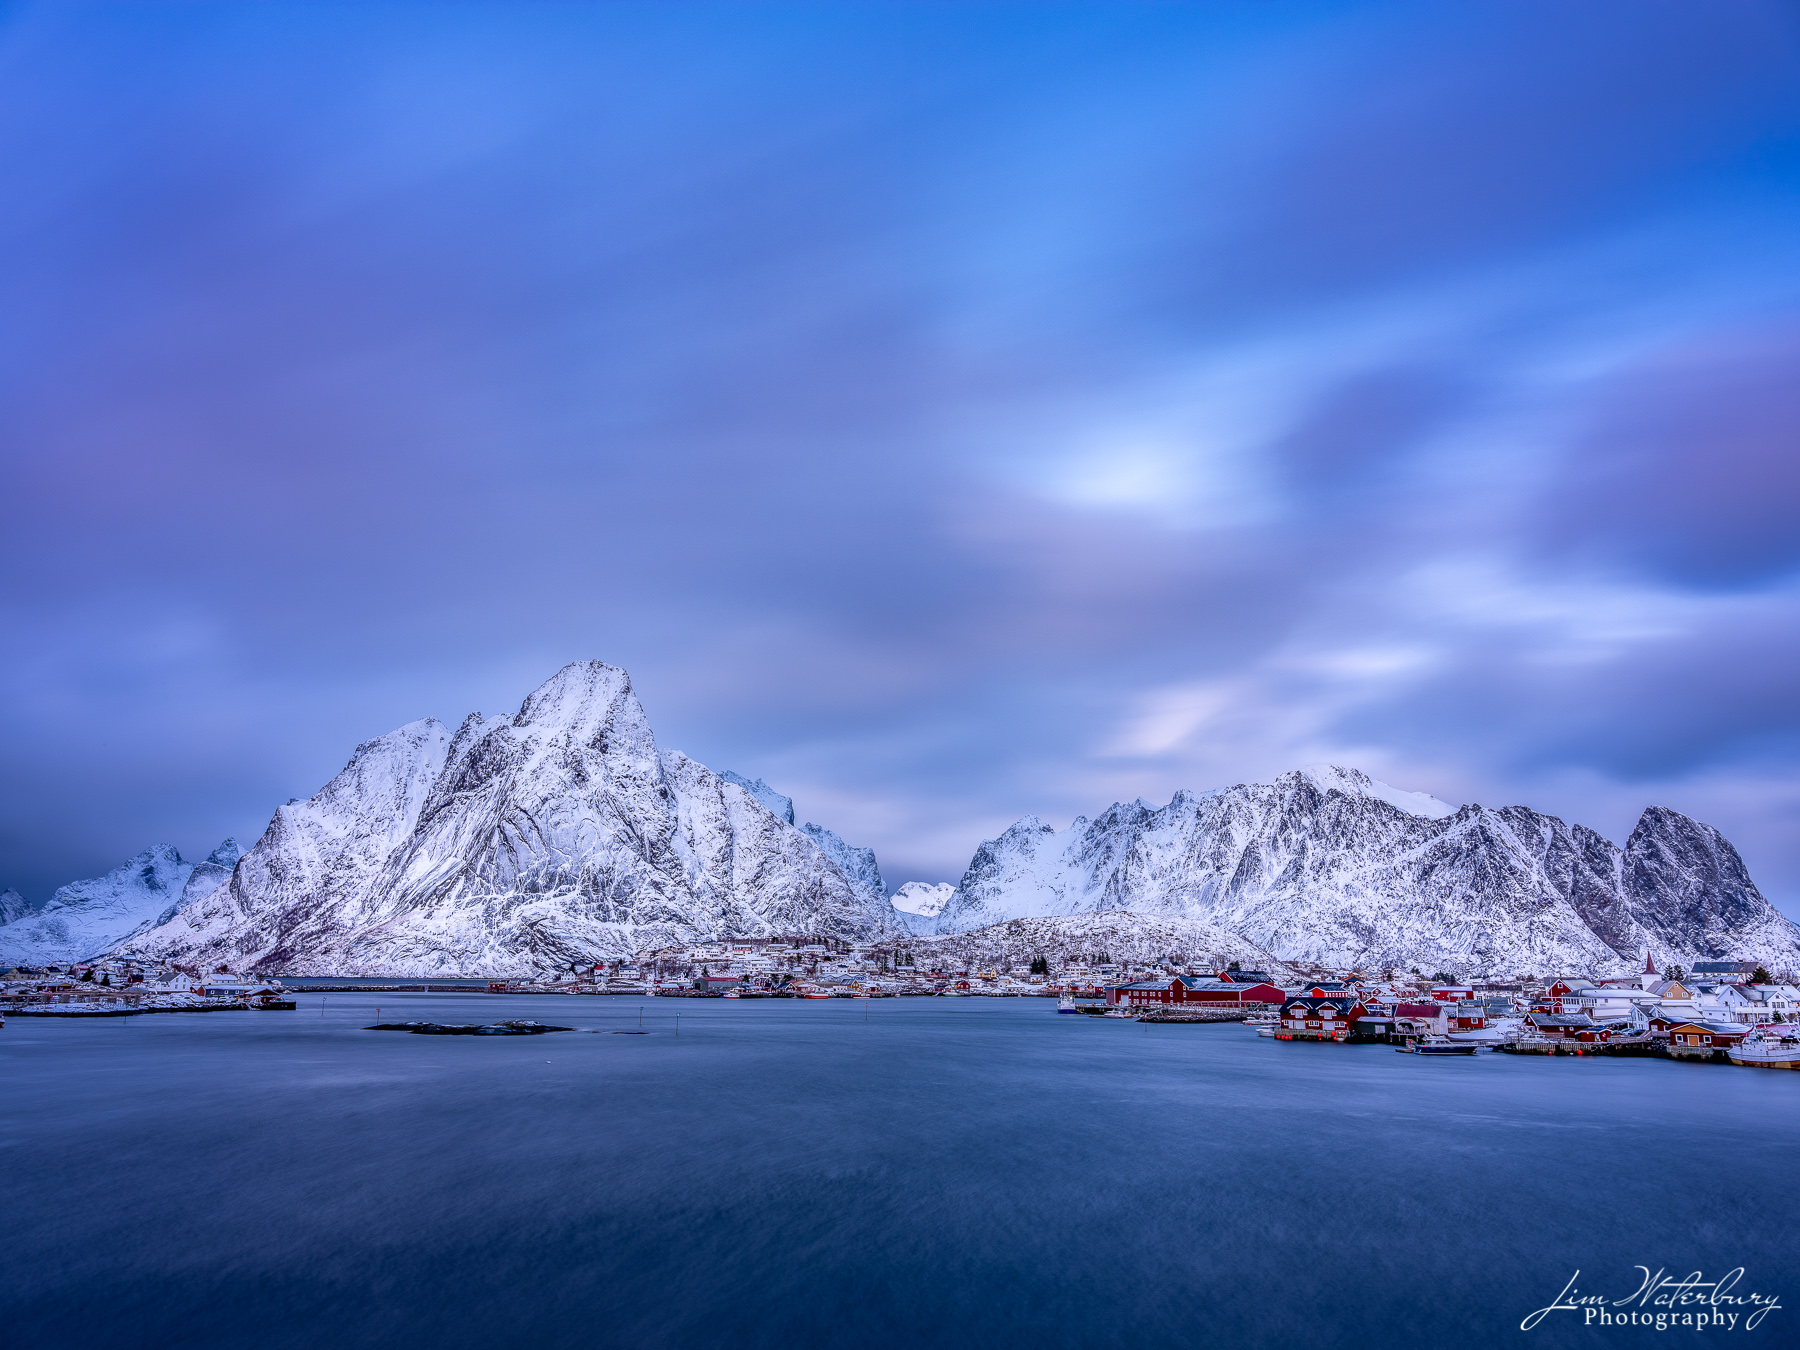 Winter view of the fishing village of Reine, with its traditional fishing cottages, at dusk.